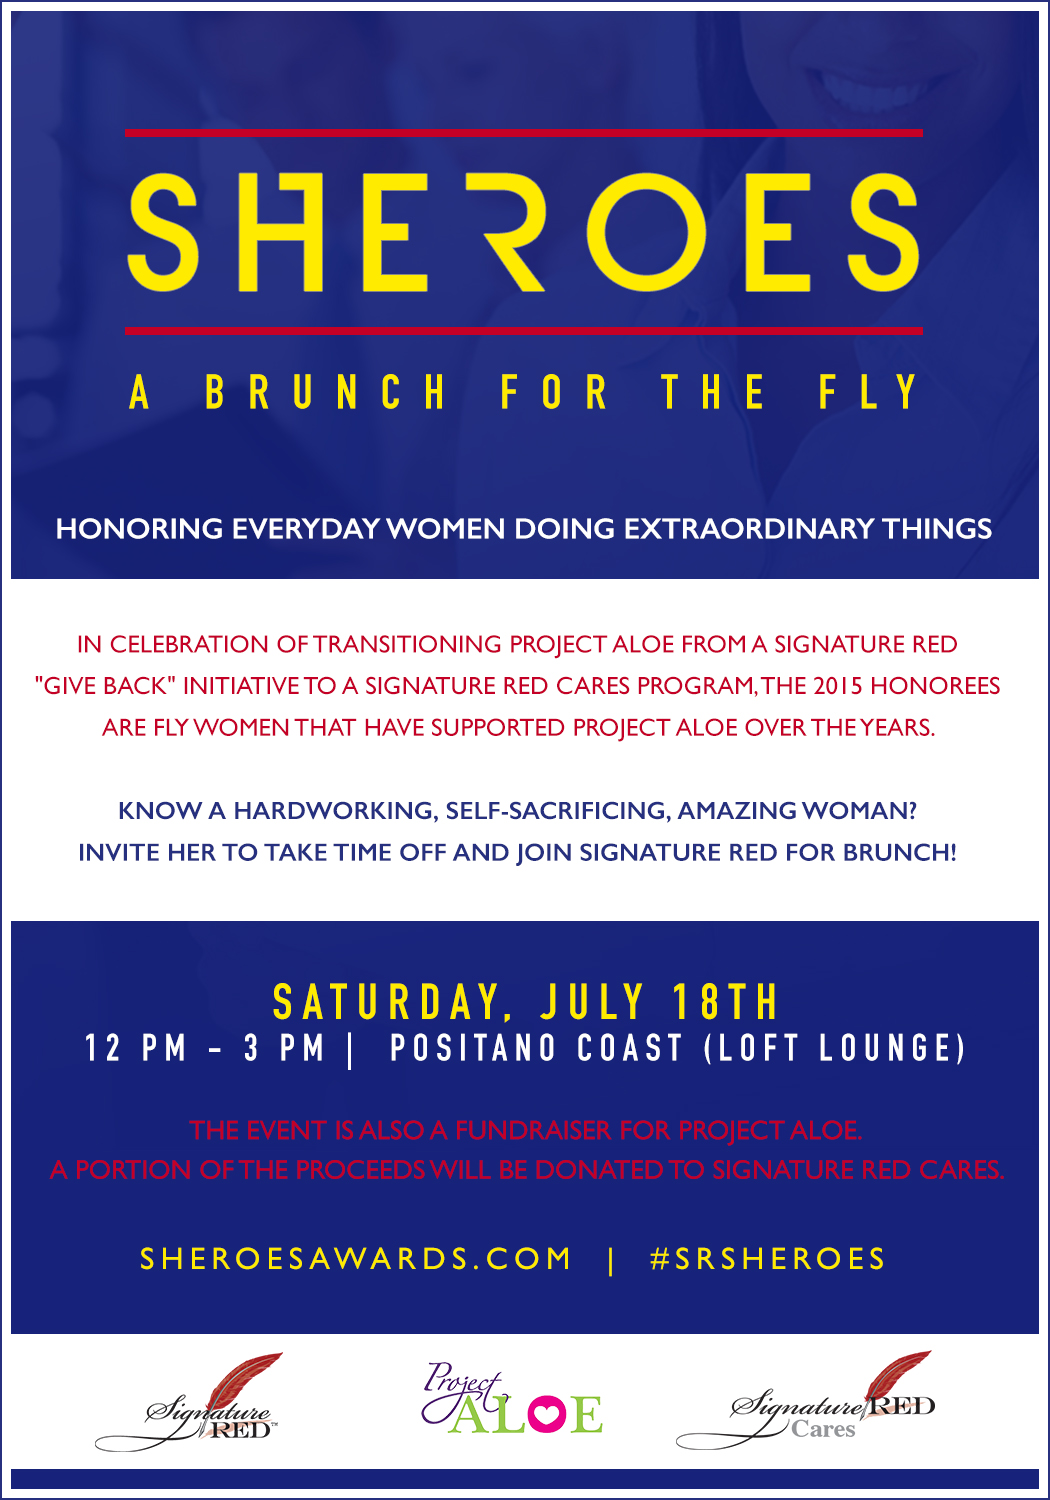 Sheroes Brunch Flyer